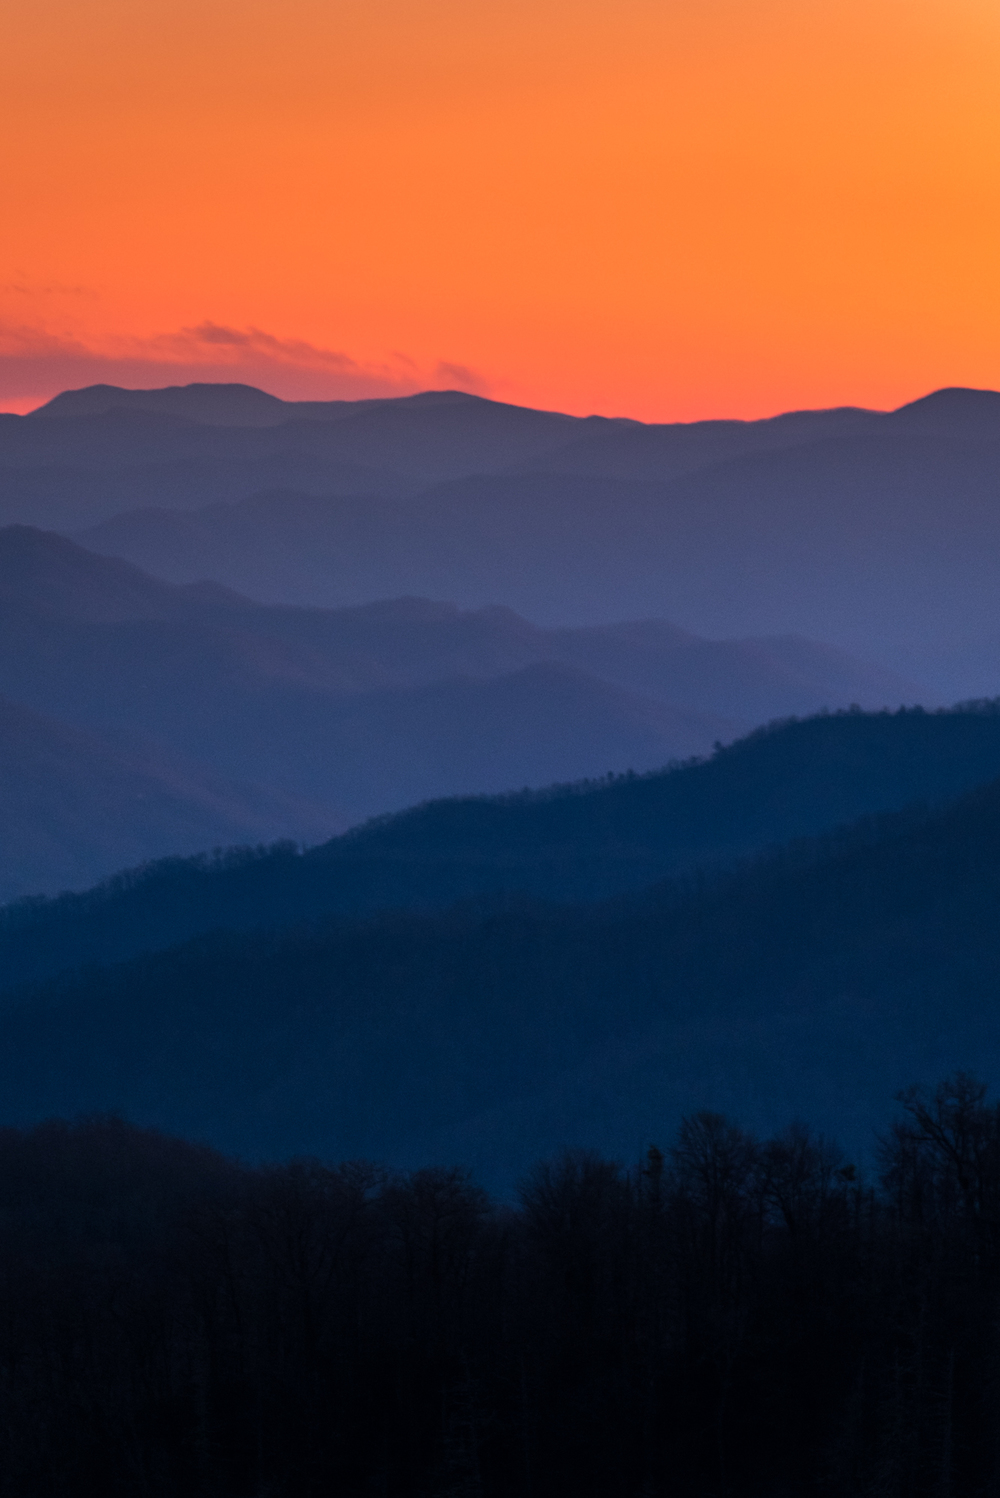 Ever since I first laid eyes on the beautiful layered mountain photos of the Great Smokies, I wanted to capture them too. Check!